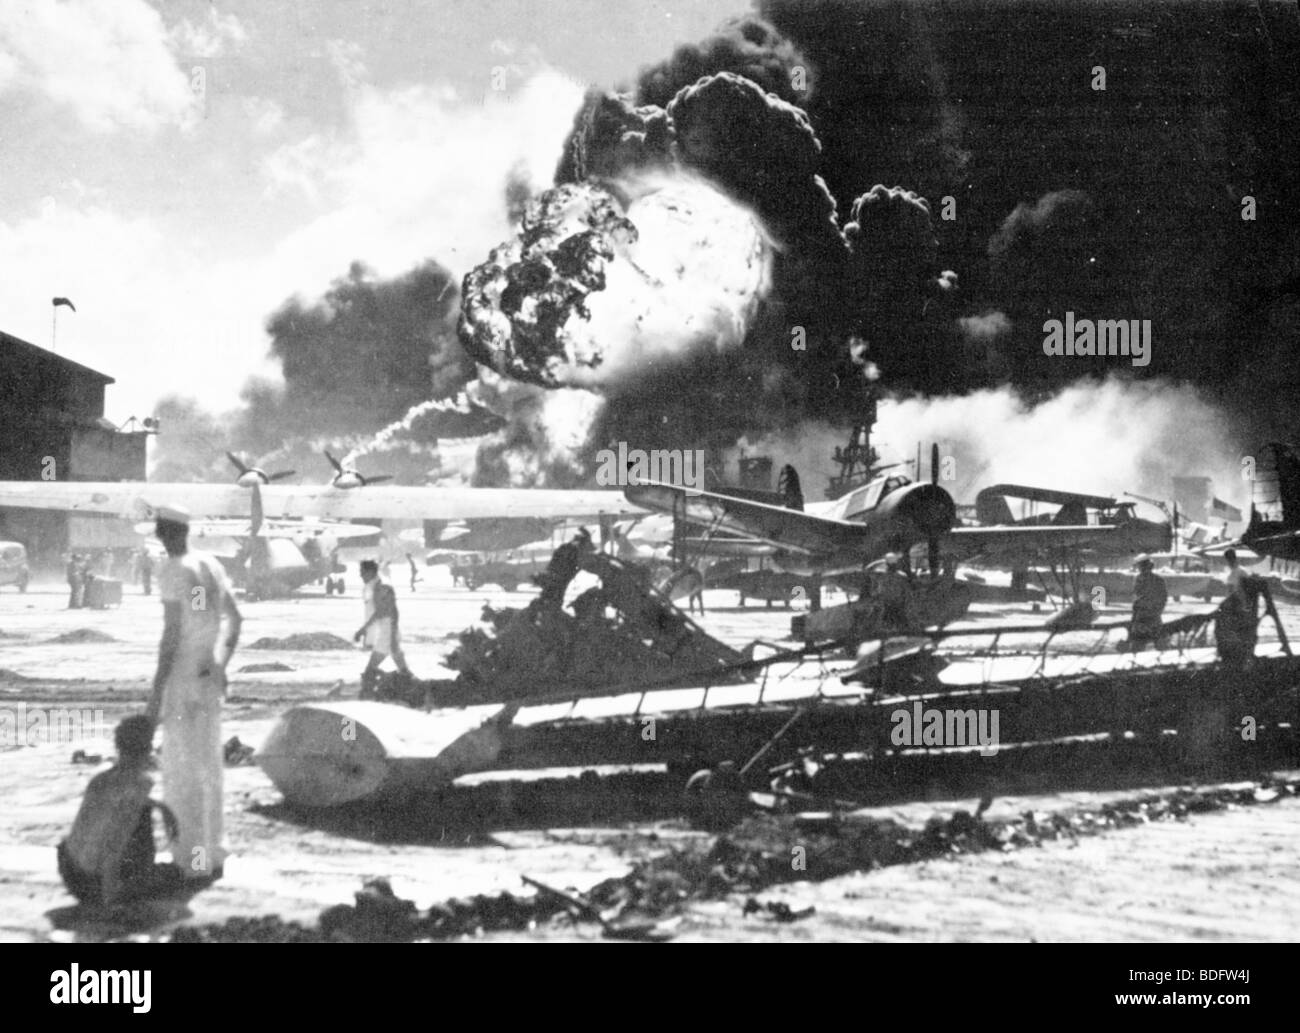 Attaque de Pearl Harbor par le Japon sur la base américaine à Oahu, Hawaii, le 7 décembre 1941 Photo Stock